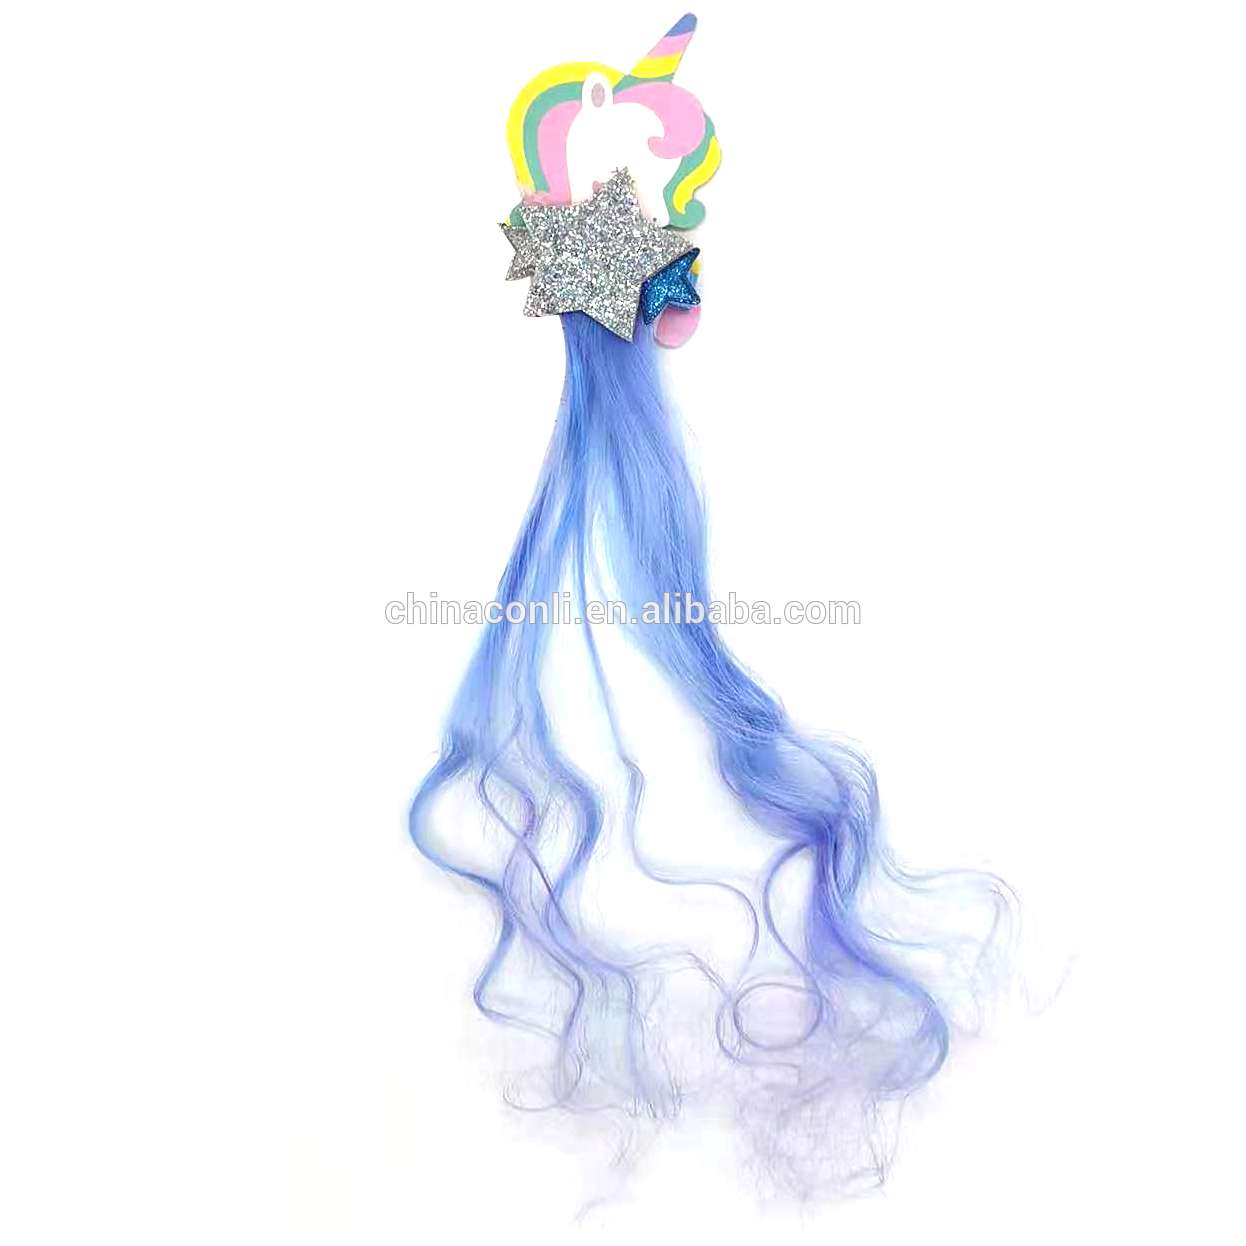 Yiwu factory hot selling blue sequin five-pointed star unicorn faux hair clip for girls kid party hair